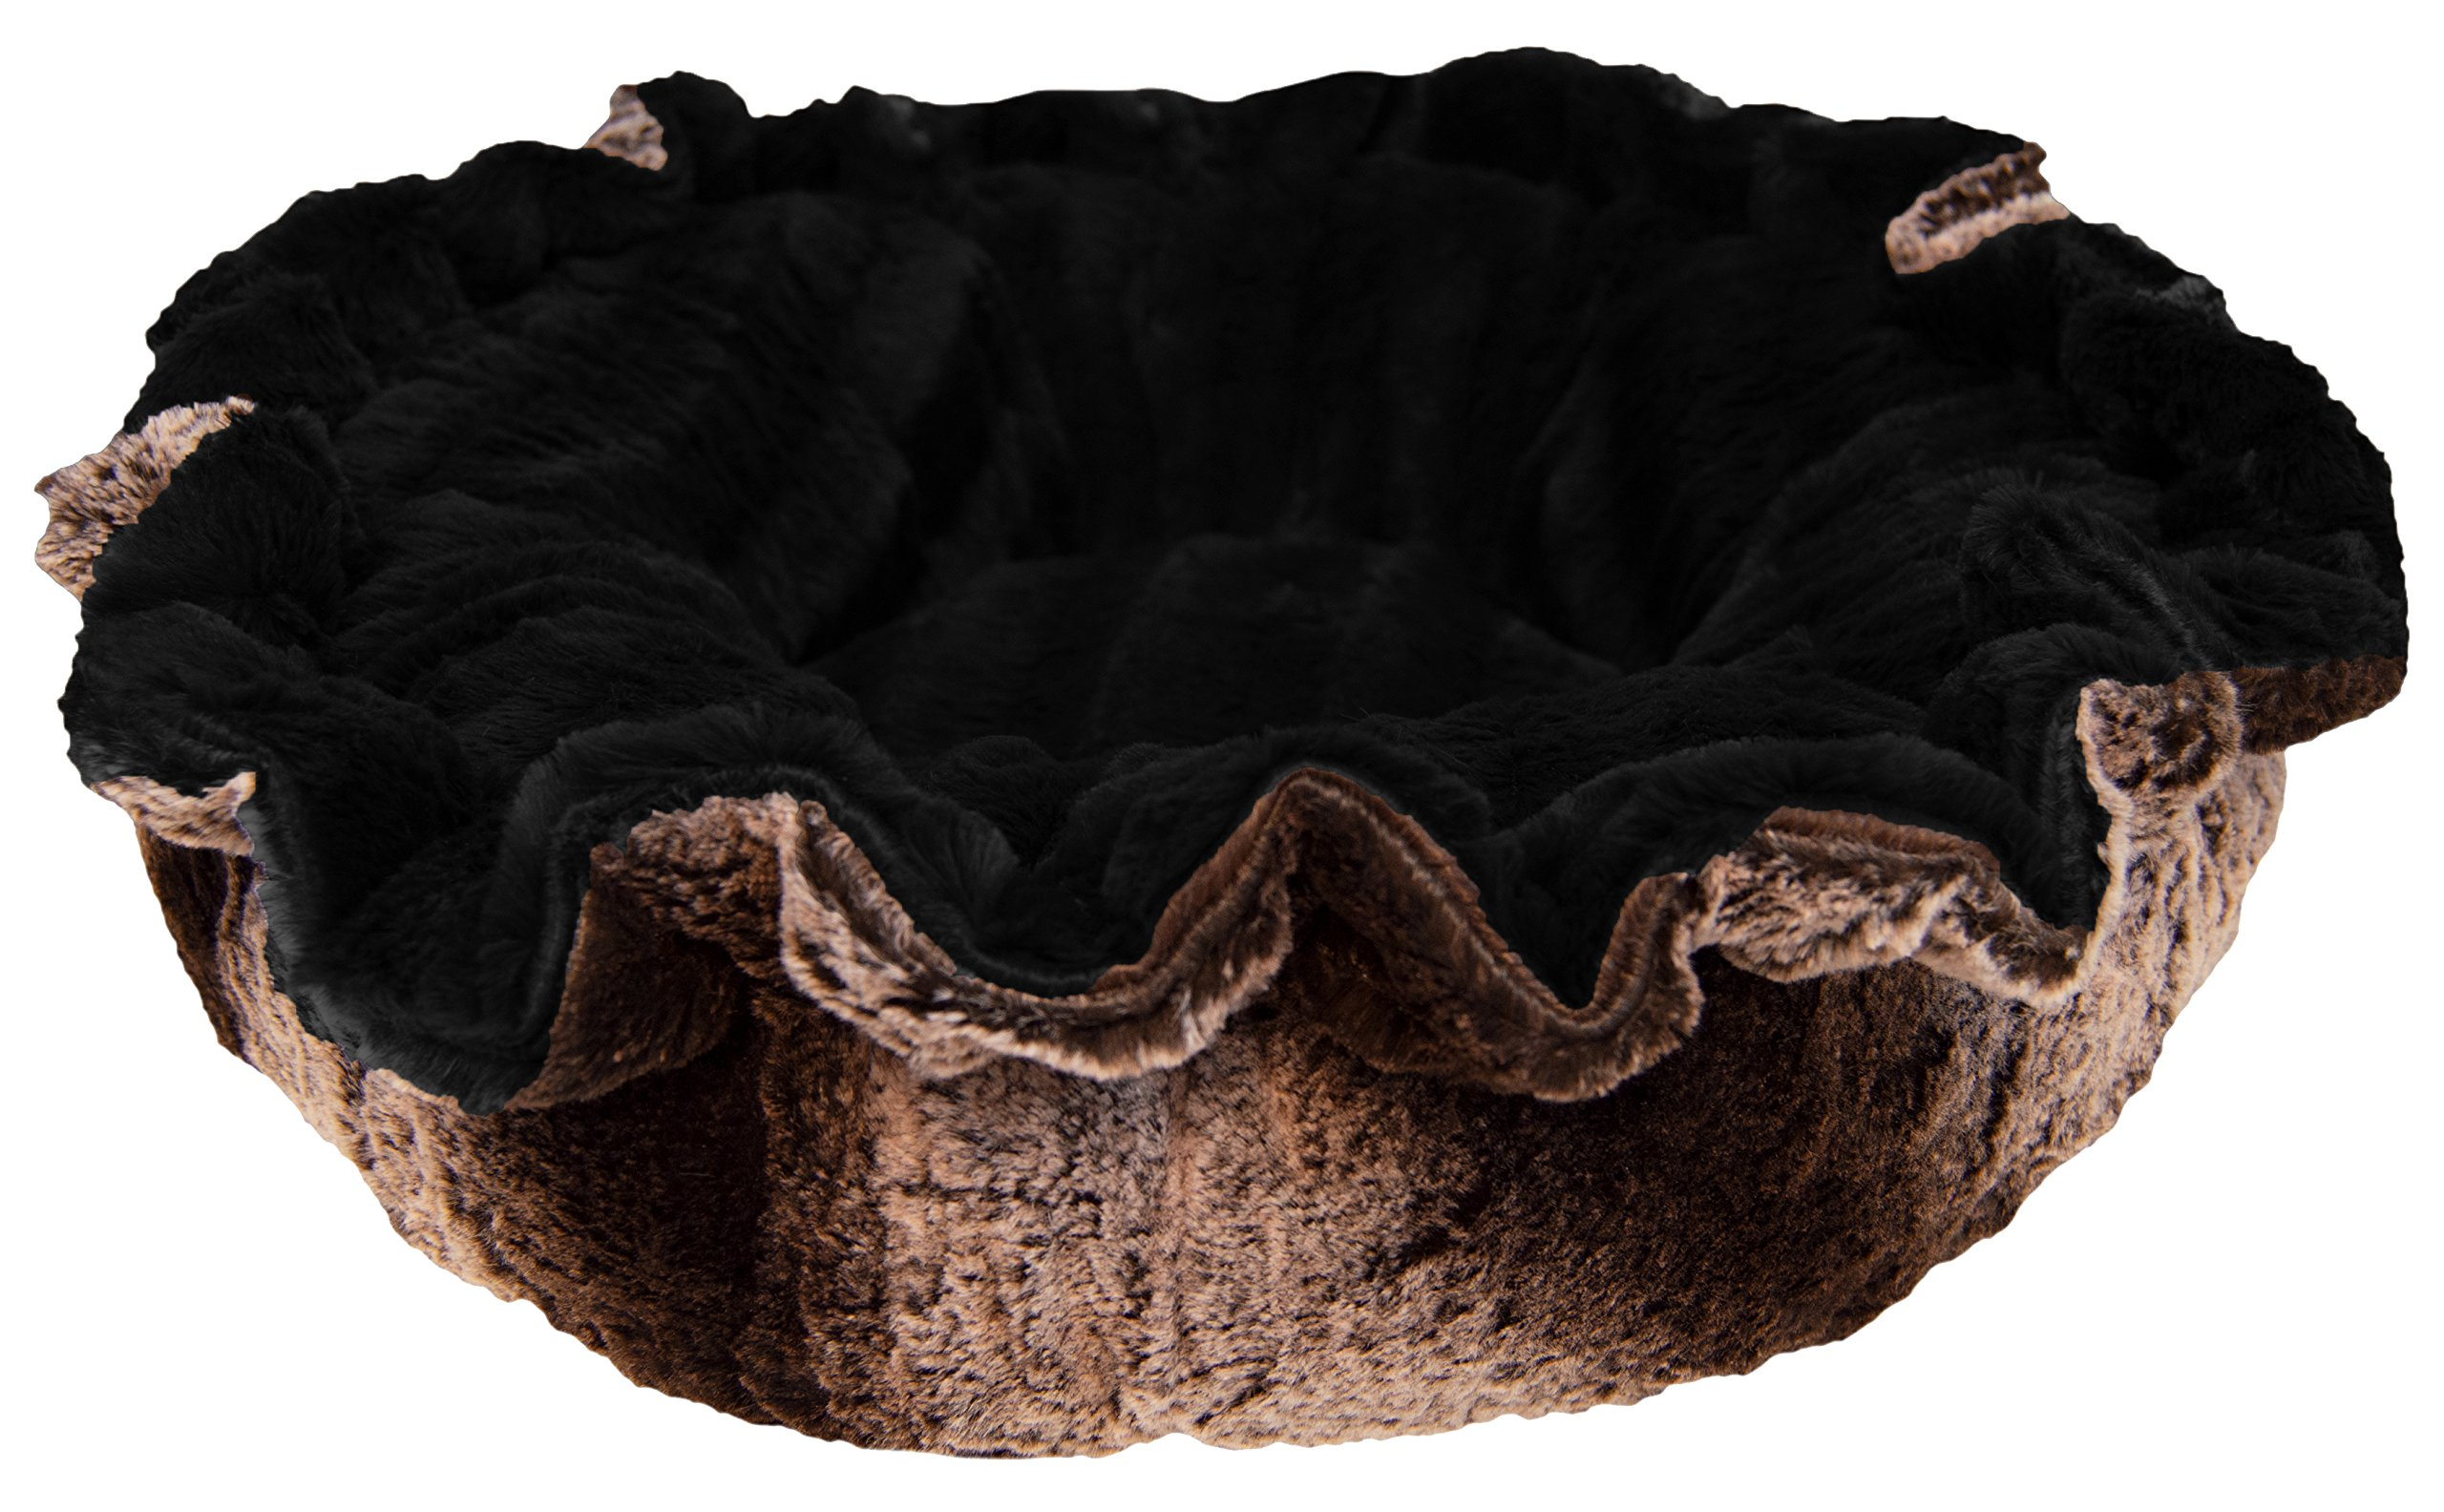 BESSIE AND BARNIE Ultra Plush Frosted Glaicer/Black Puma Luxury Deluxe Dog/Pet Lily Pod Bed by BESSIE AND BARNIE